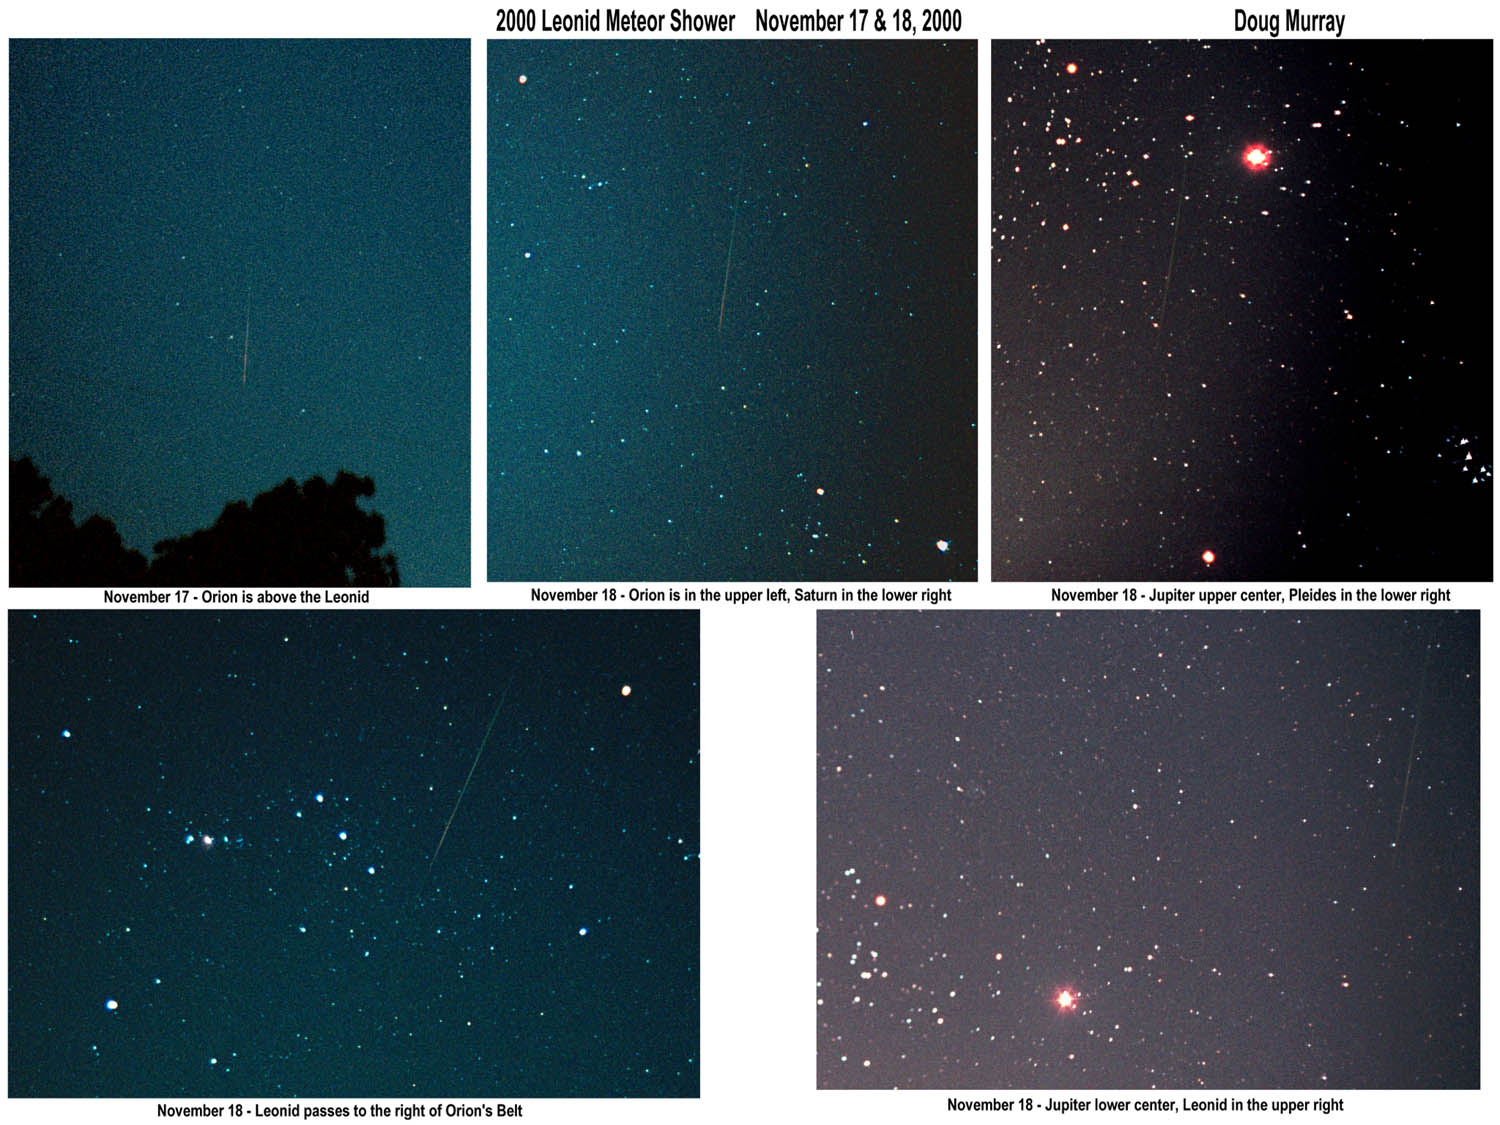 A 2000 Leonid Through Orion